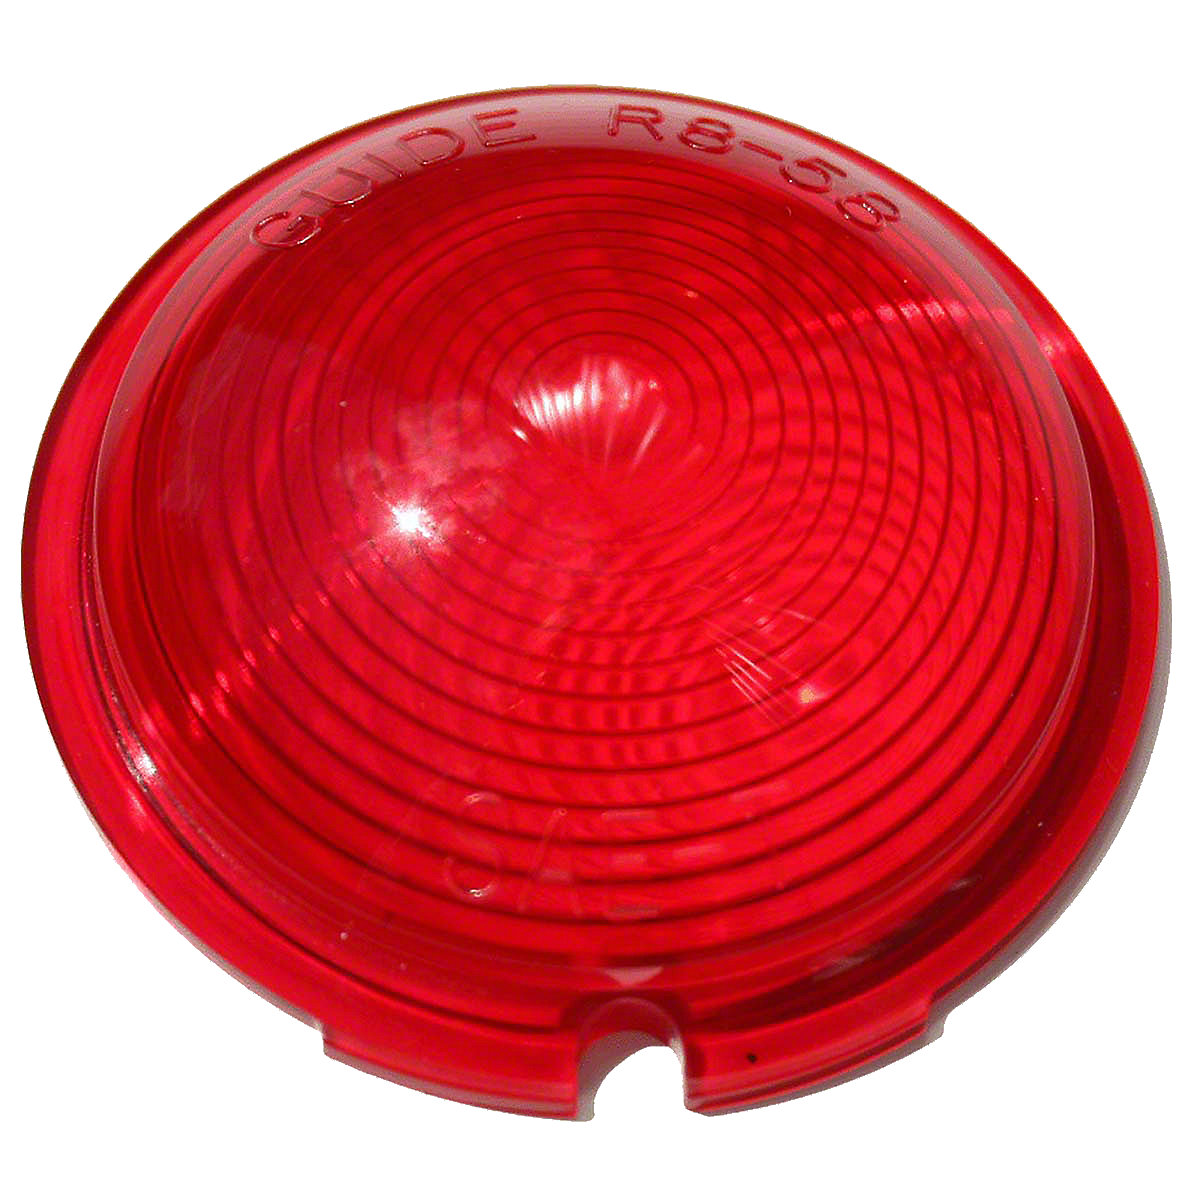 ACS220 Plastic Tail Light Lens